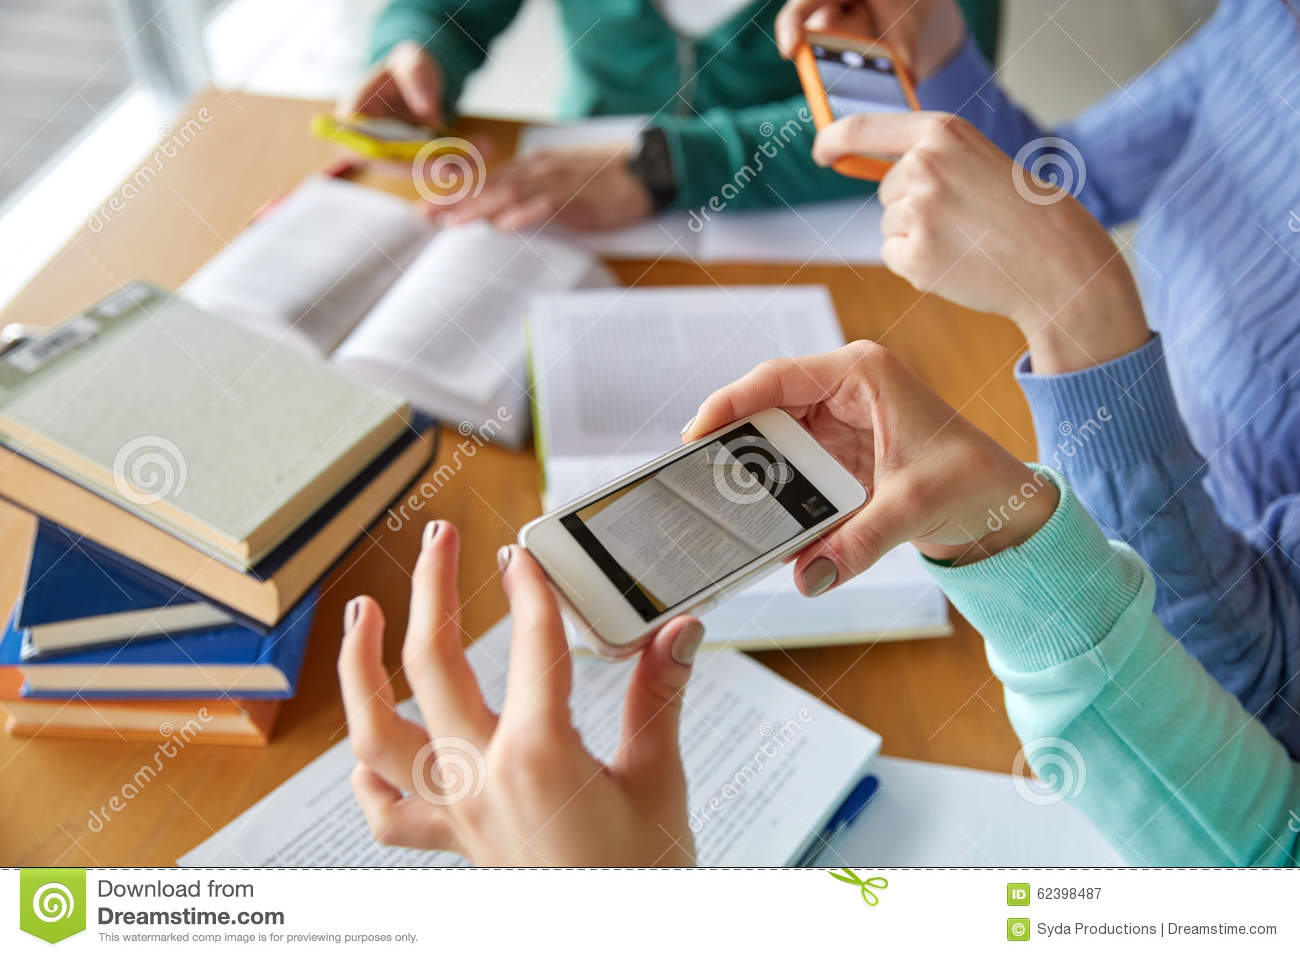 Students With Smartphones Making Cheat Sheets Stock Photo